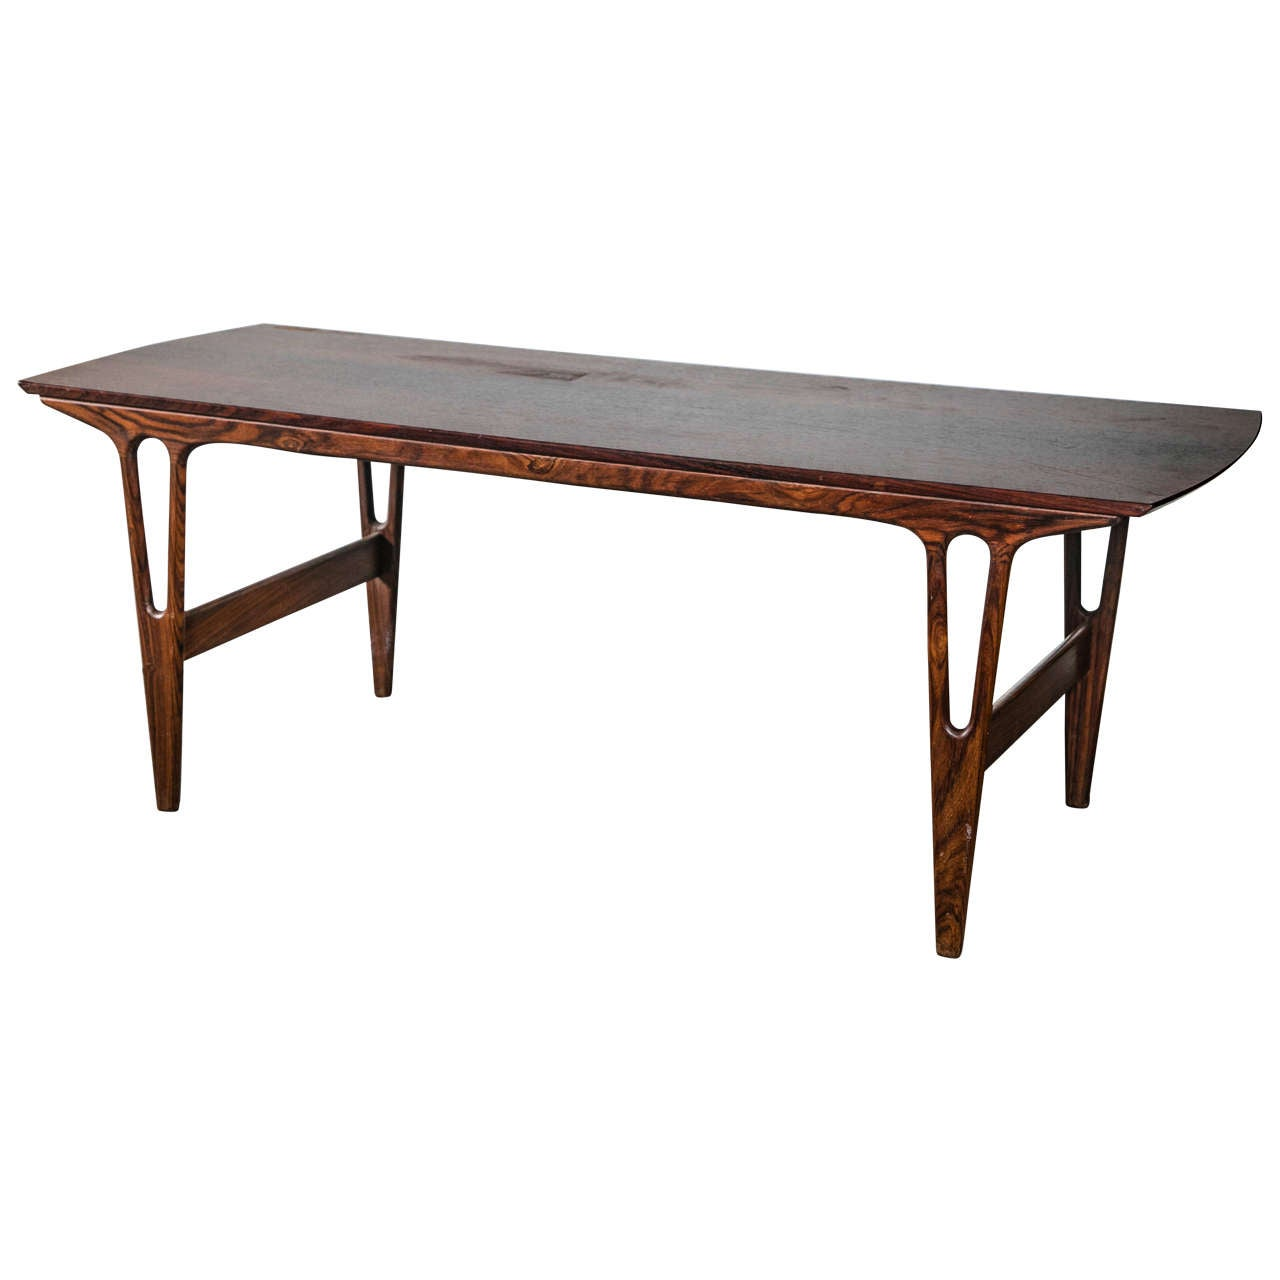 Rosewood Danish Mid Century Modern Coffee Table At 1stdibs